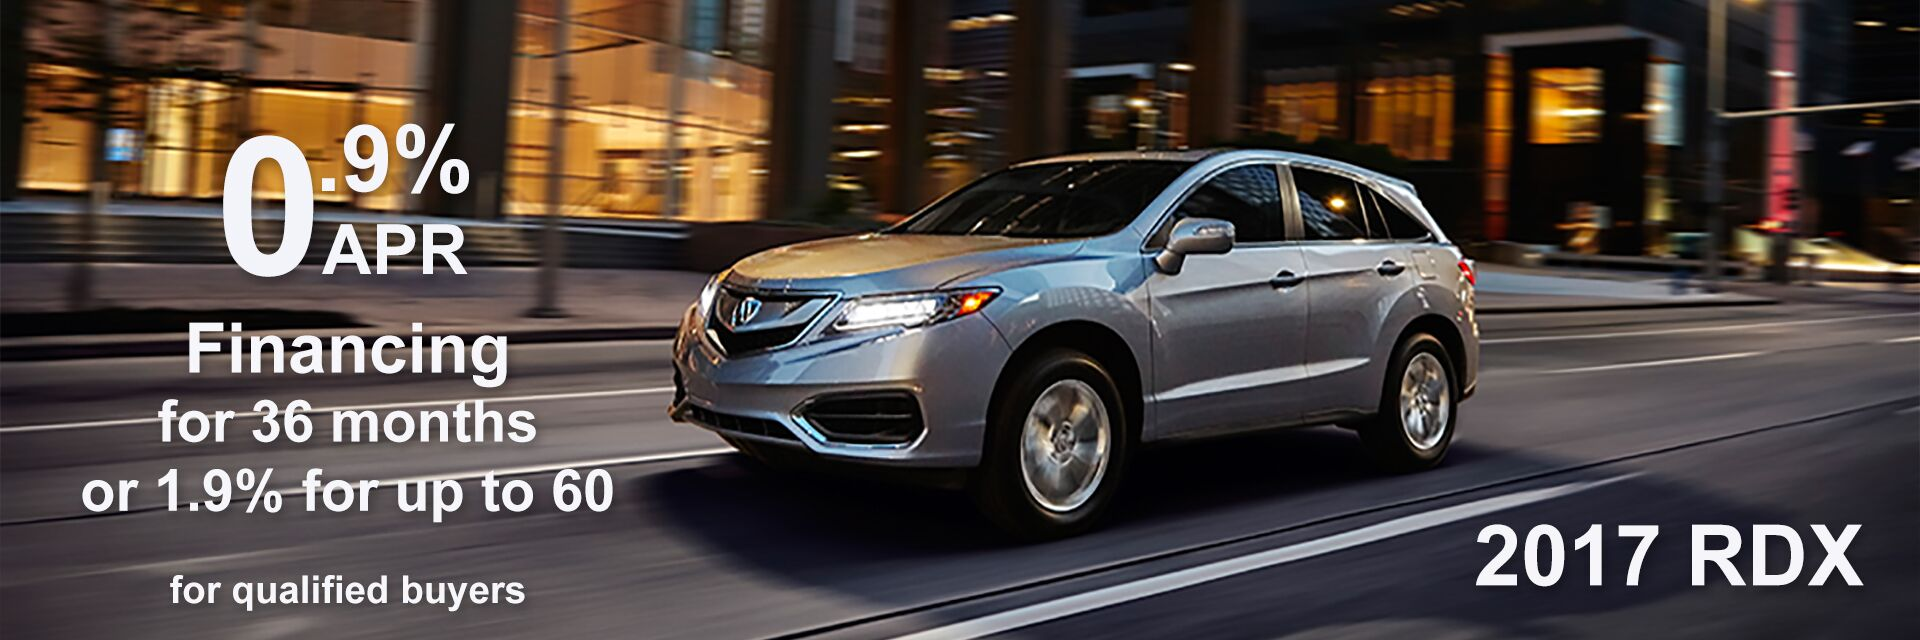 RDX 0.9 thru July